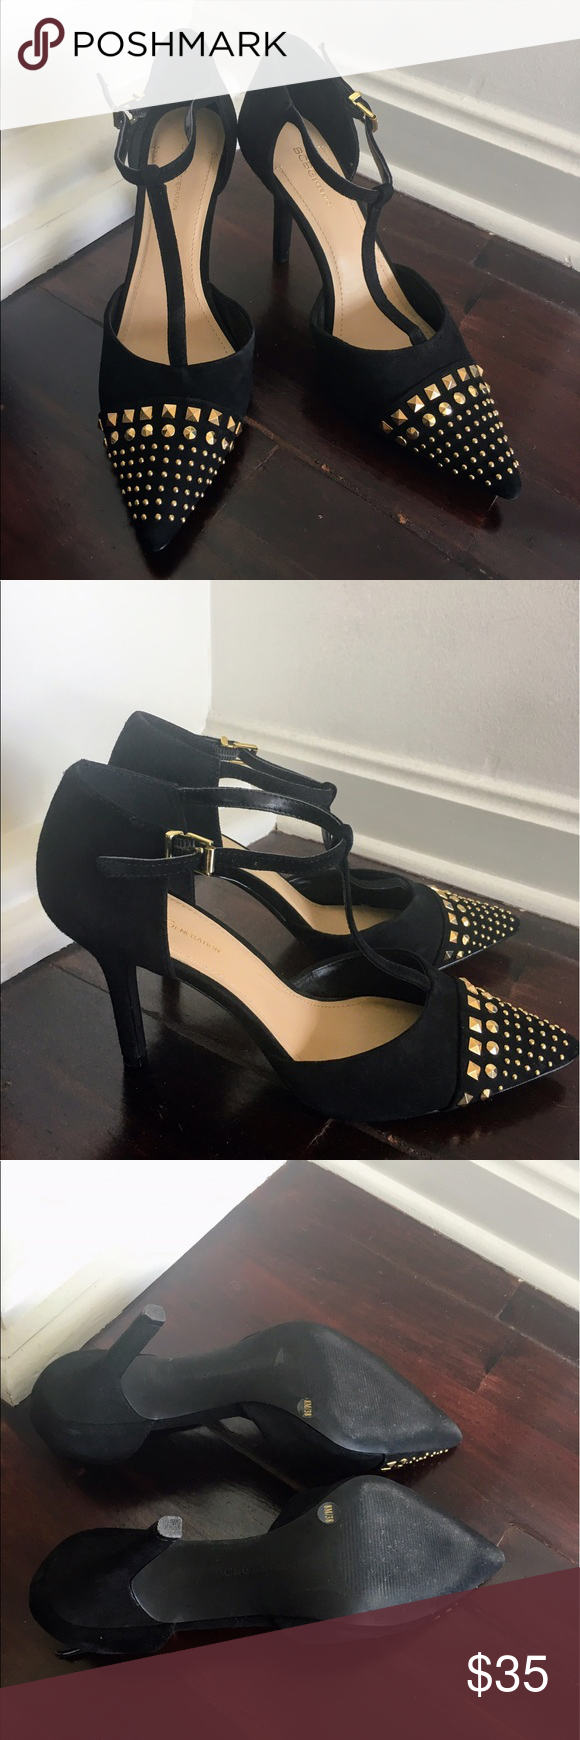 BCBGGeneration black Suede Rhinestone pumps heels Black suede heels with gold rhinestone details. Worn only once and in perfect condition. Buckle closure with loops to keep straps from sticking out. Looks great with a dress or jeans. Only worn this once! BCBGeneration Shoes Heels